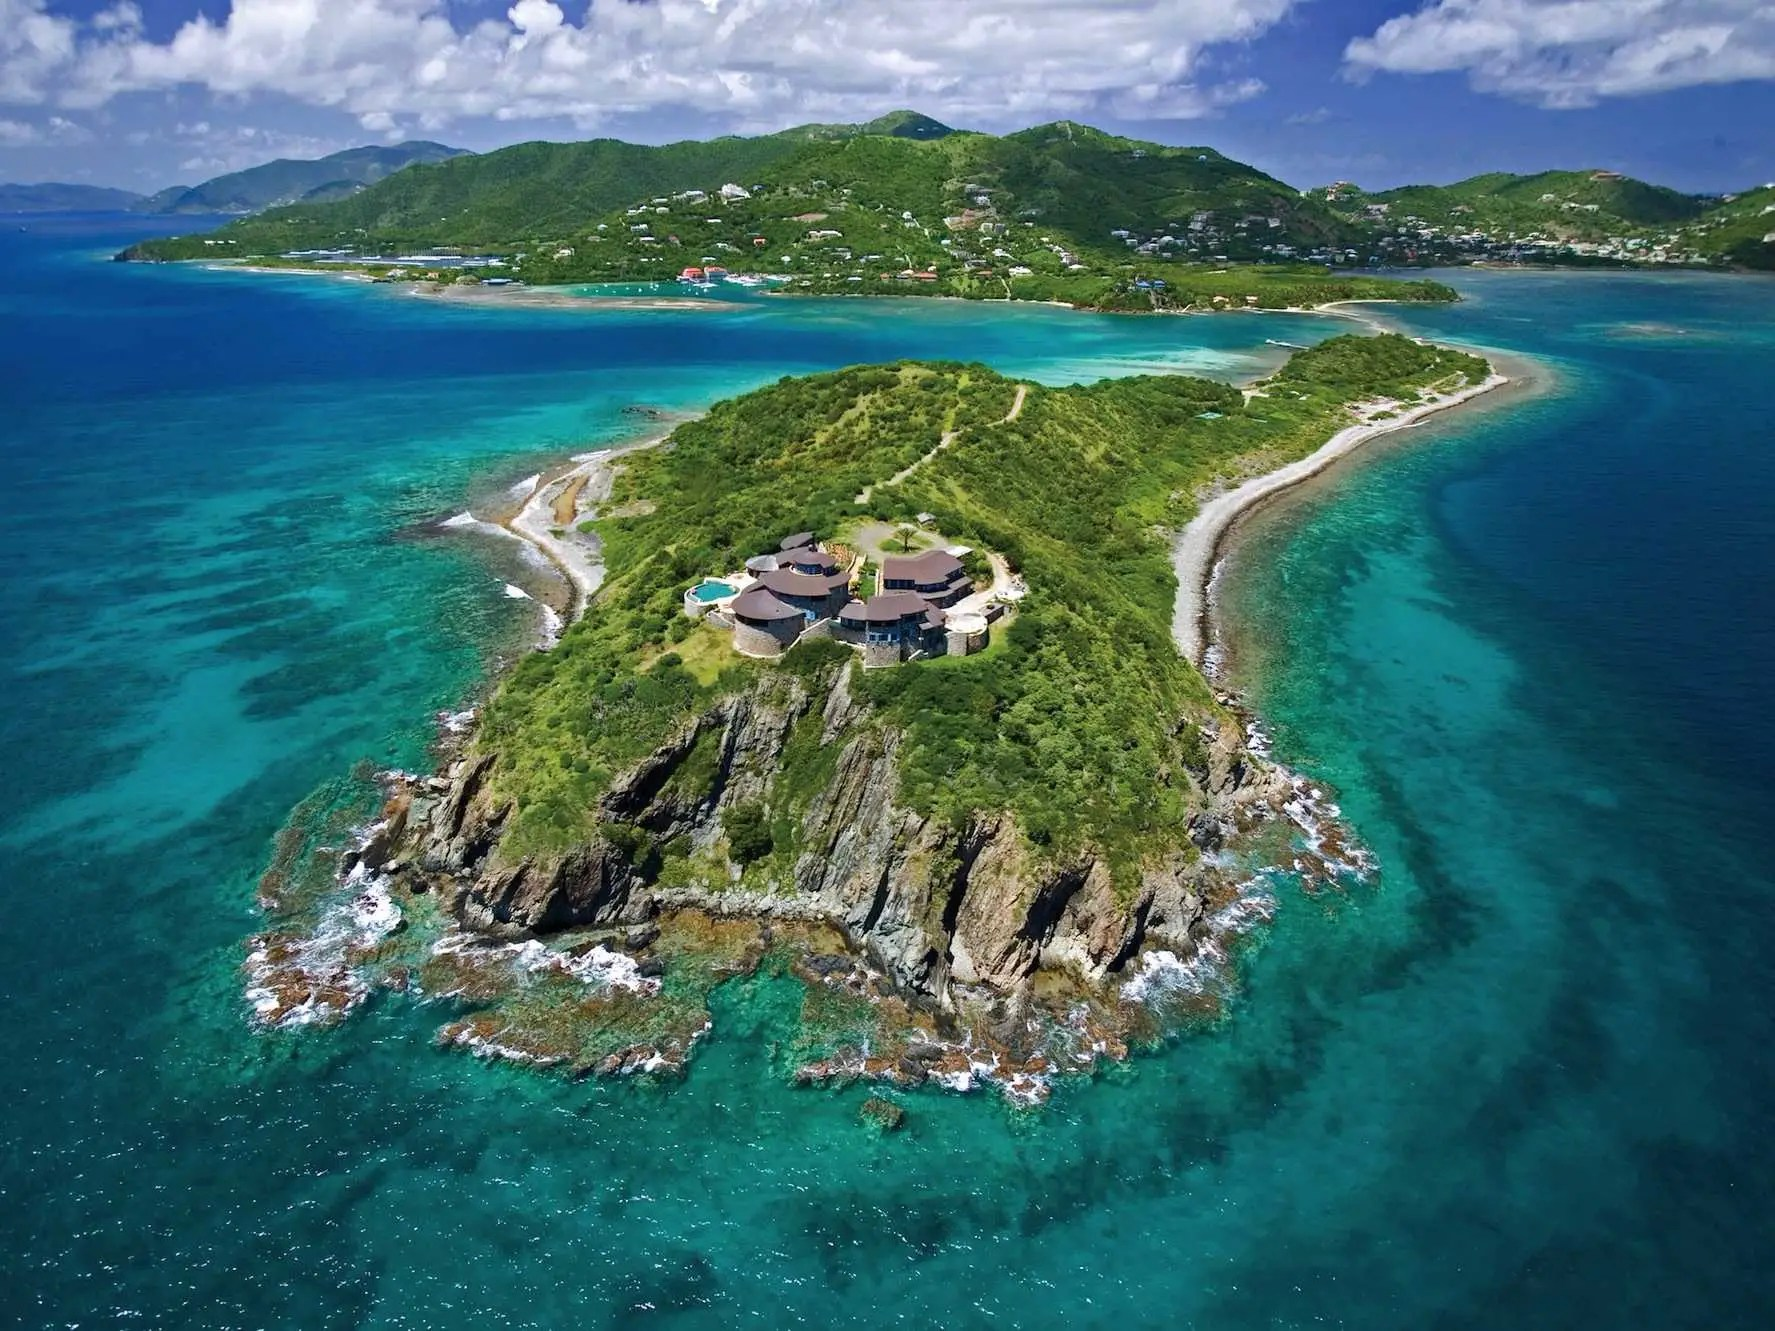 Prive Eiland How To Buy A Private Island Even If You 39re Not A Tech